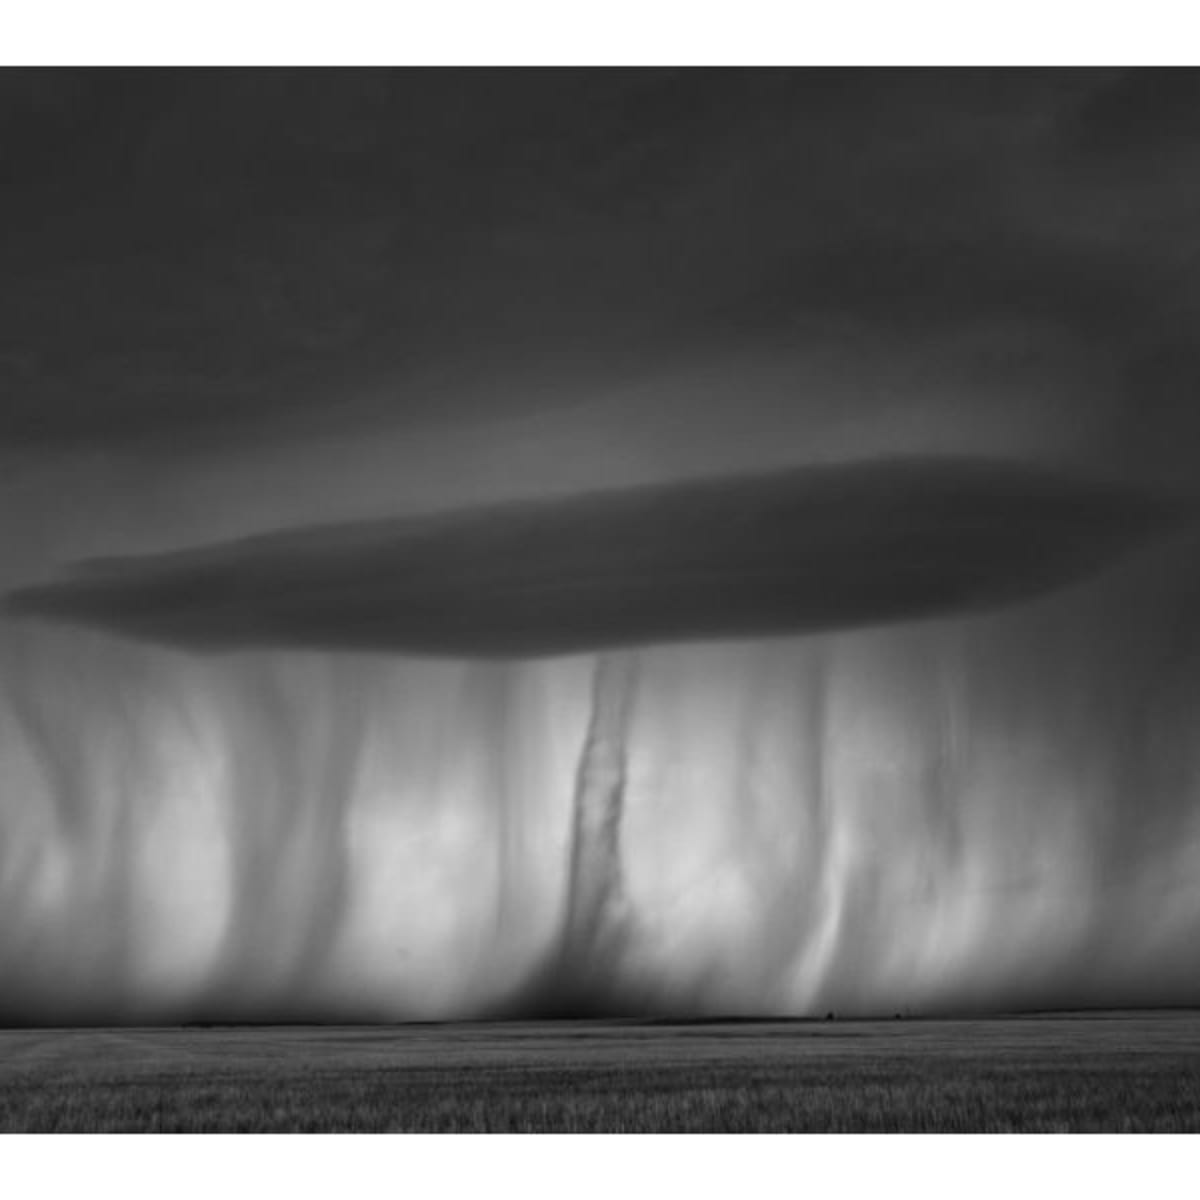 Afterimage Gallery presents Mitch Dobrowner